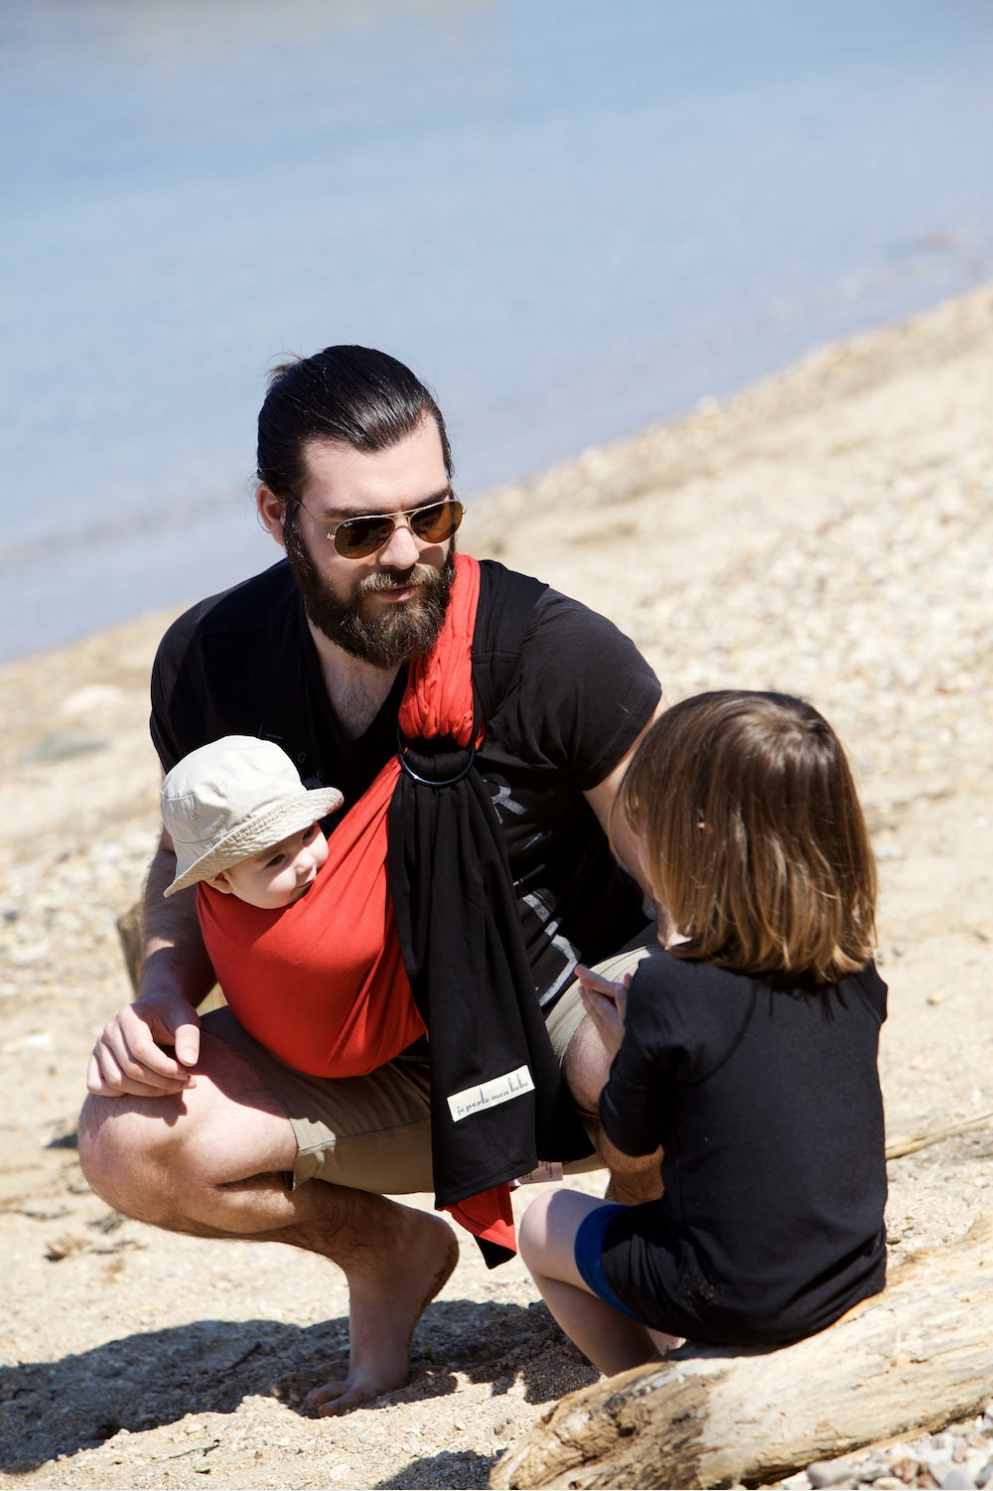 Using A Ring Sling In Summer and In Warm Weather